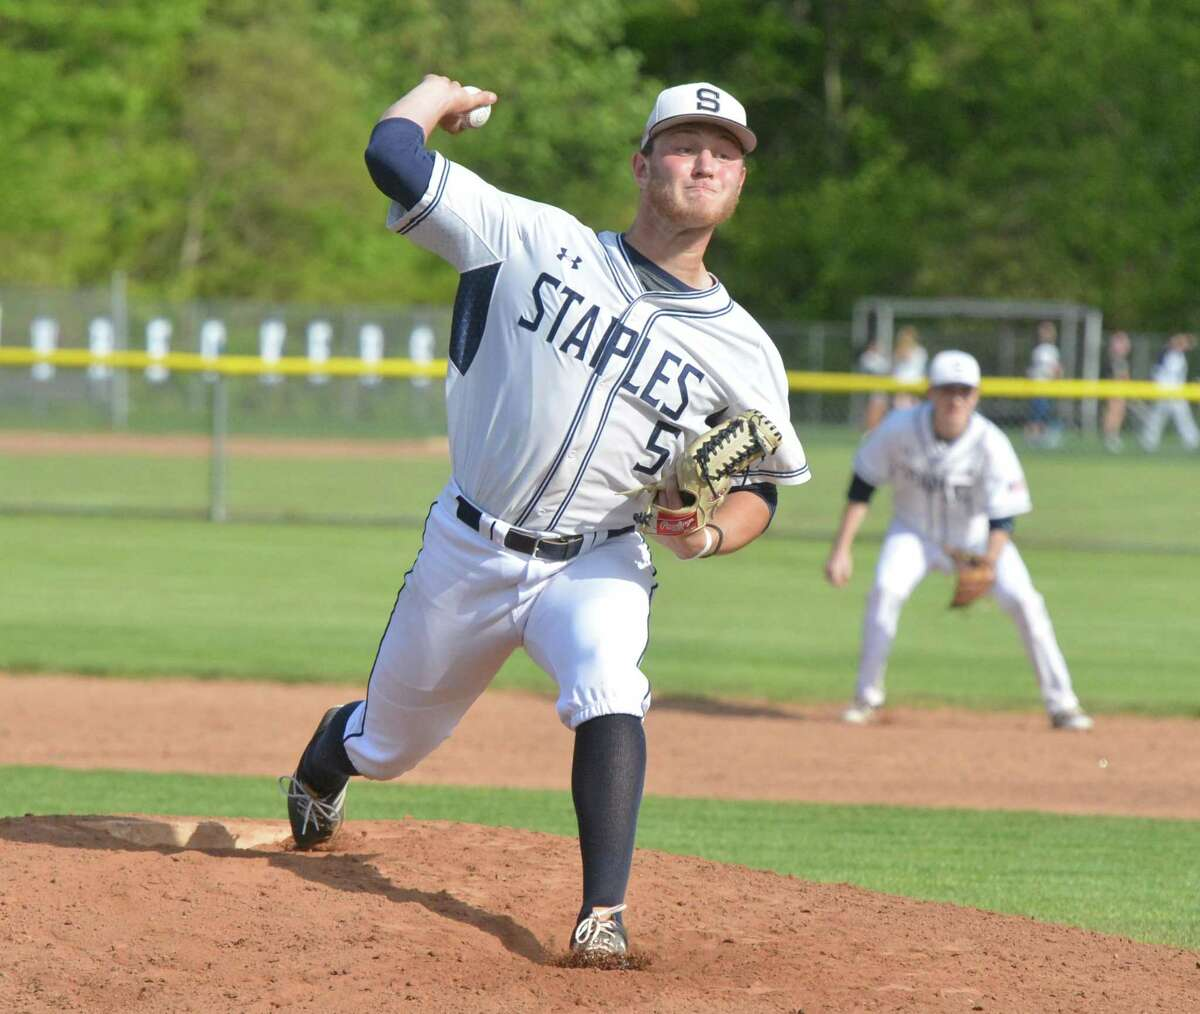 Staples High School's #5 Ben Casparius on the mound vs. New Canaan during baseball action on Wednesday May 10, 2017 at Staples High in Westport Conn.